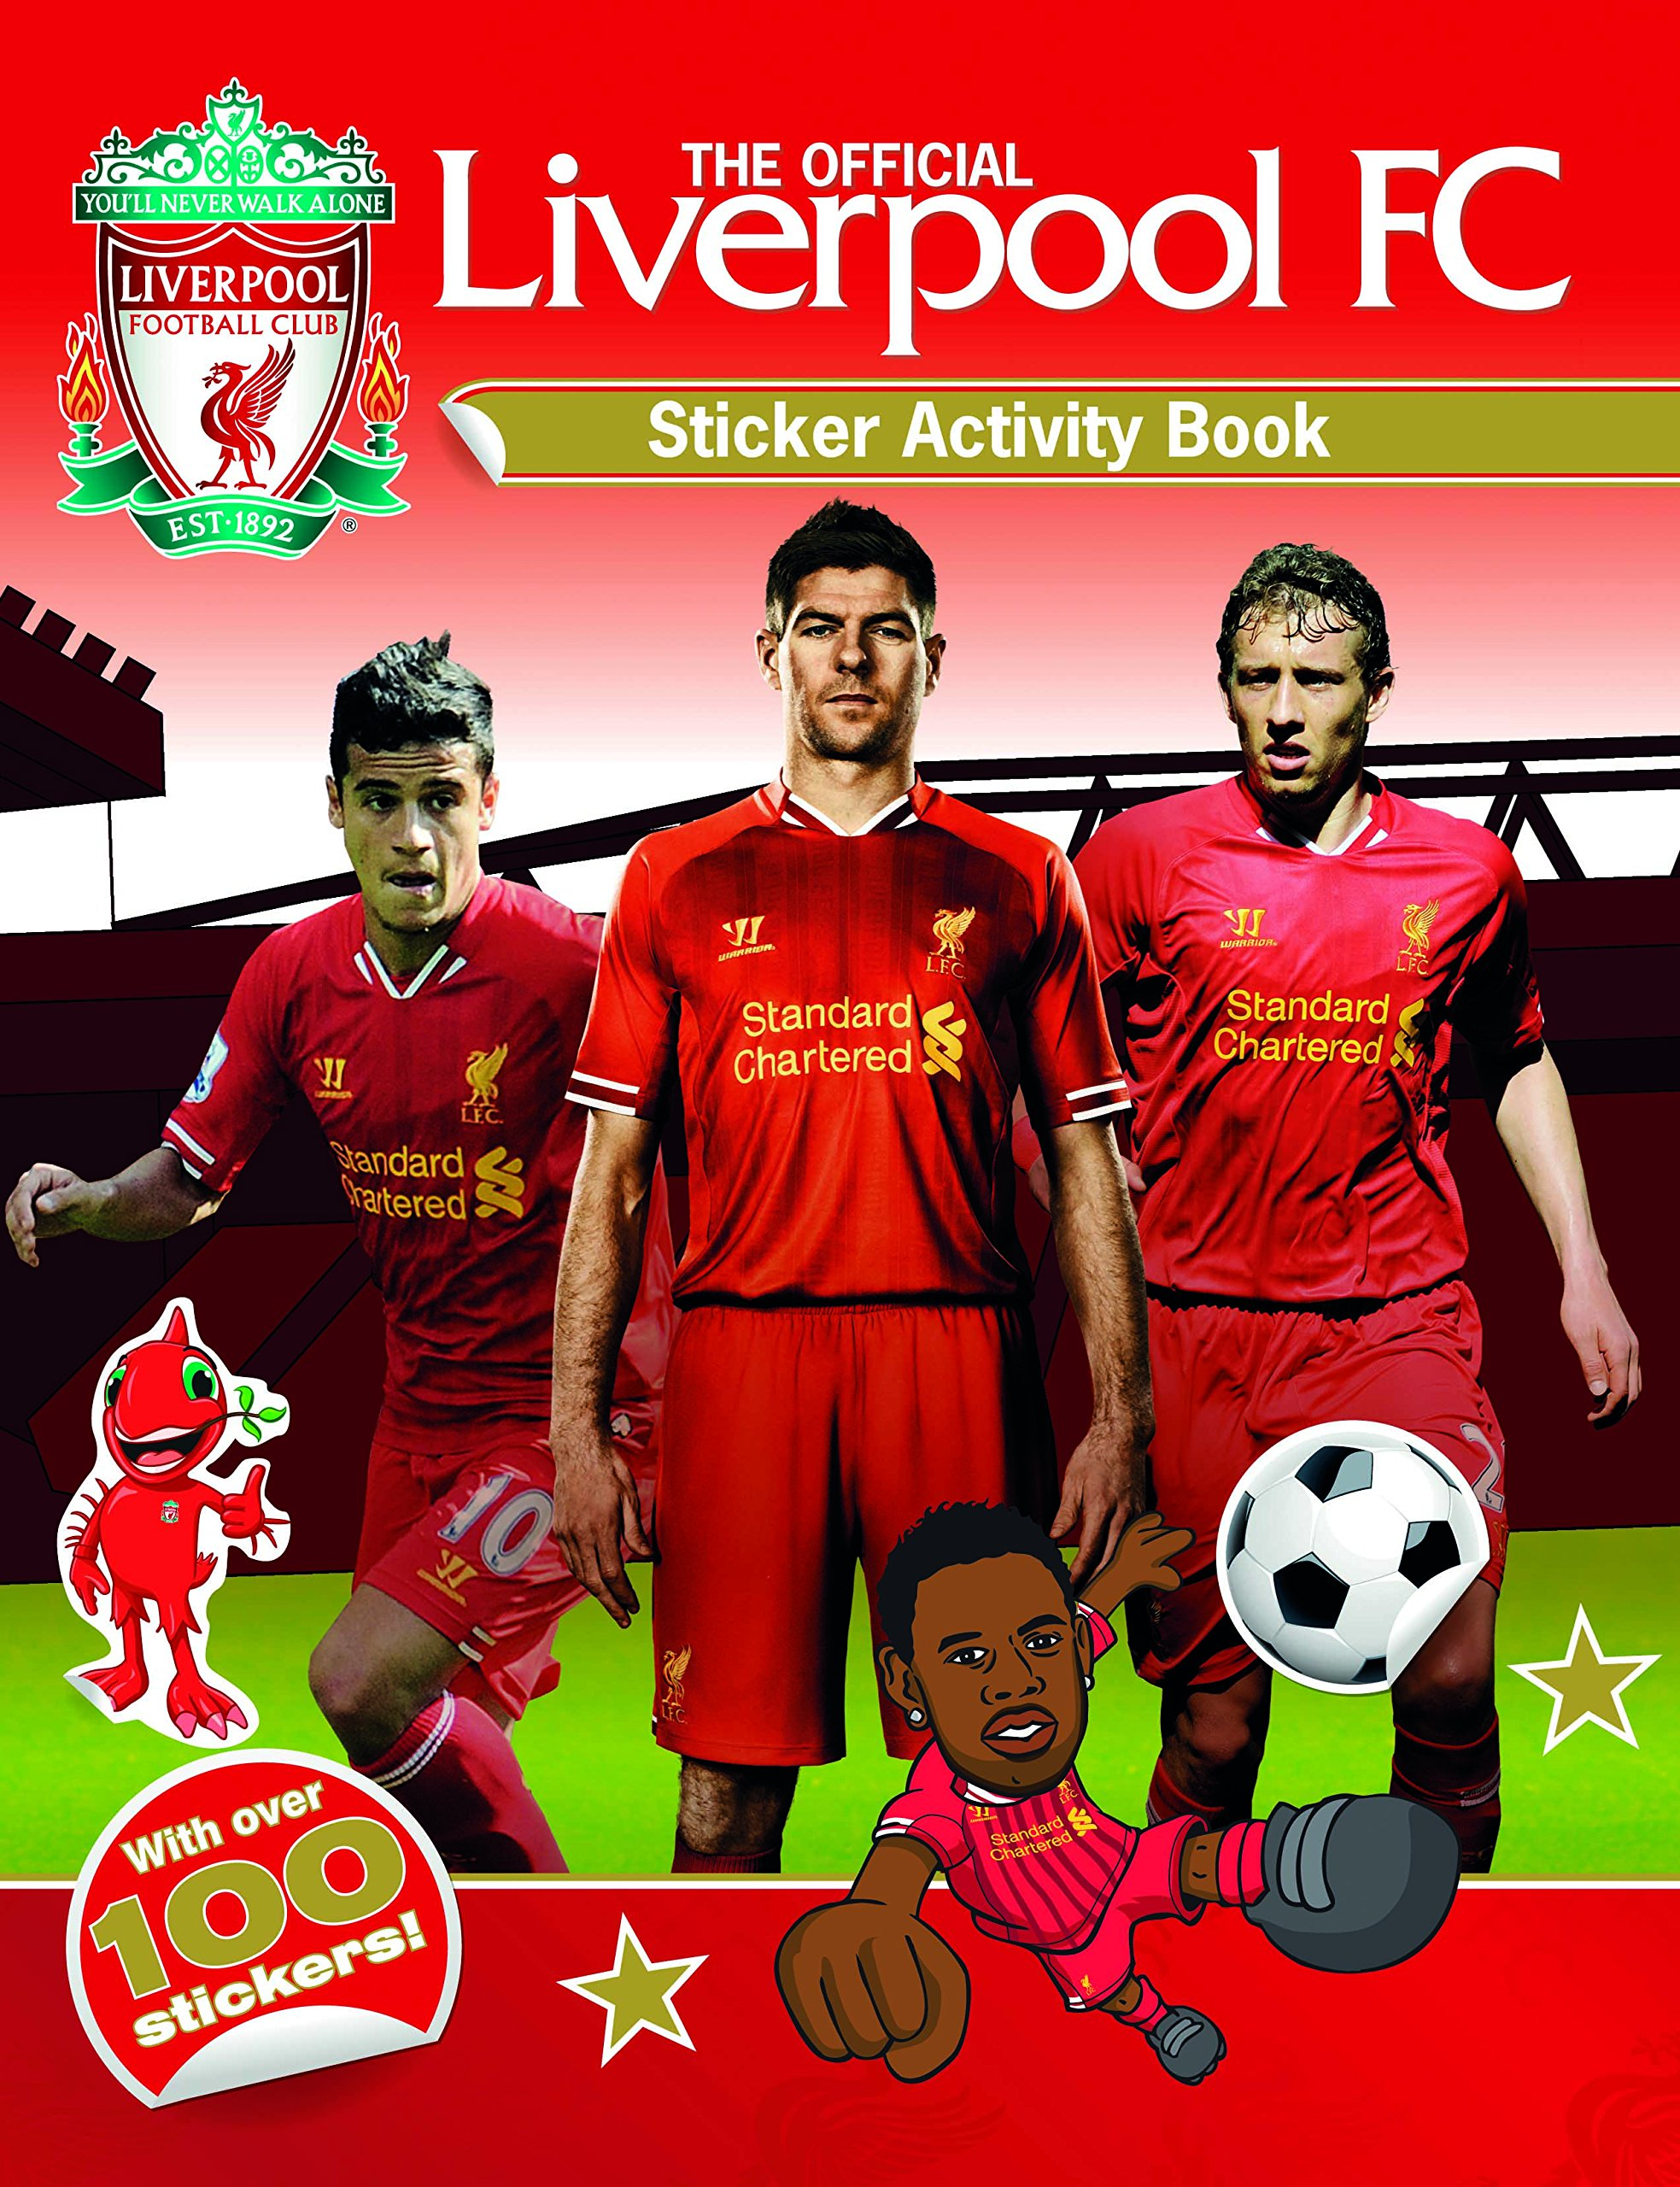 The official liverpool fc sticker activity book paperback 10 oct 2013